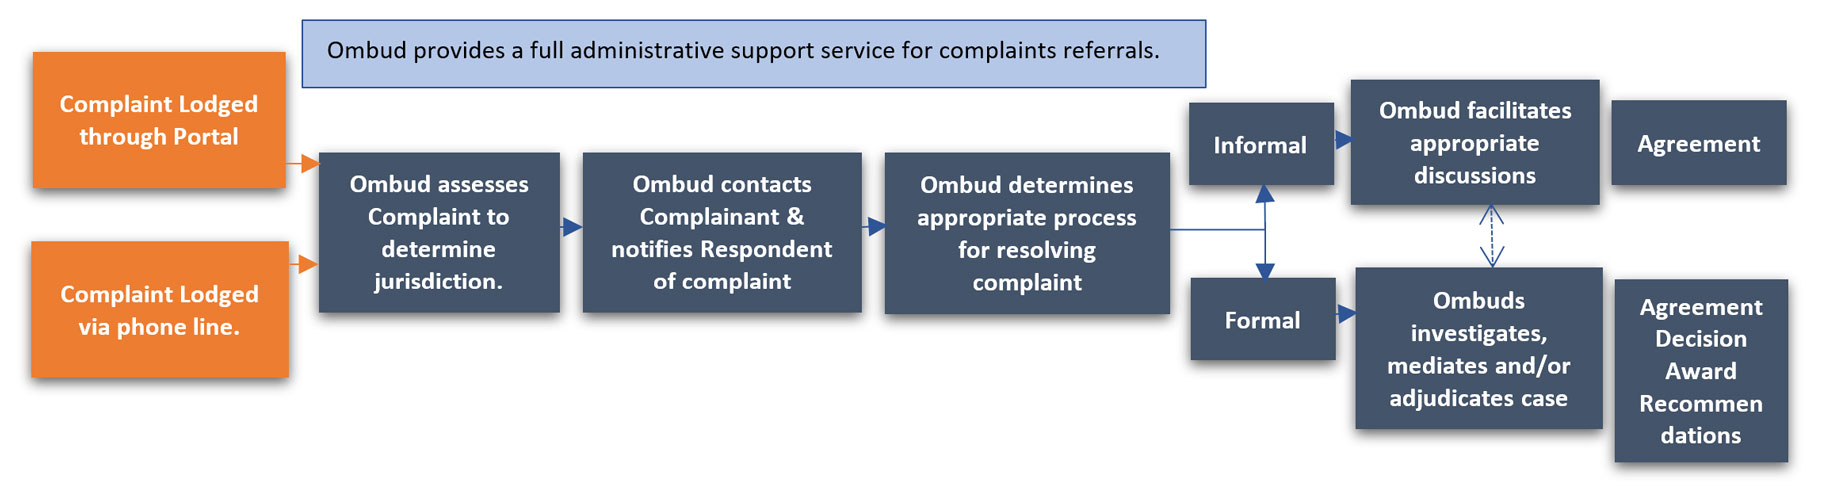 Process flow for the referrals of complaints to an Office of the Ombud